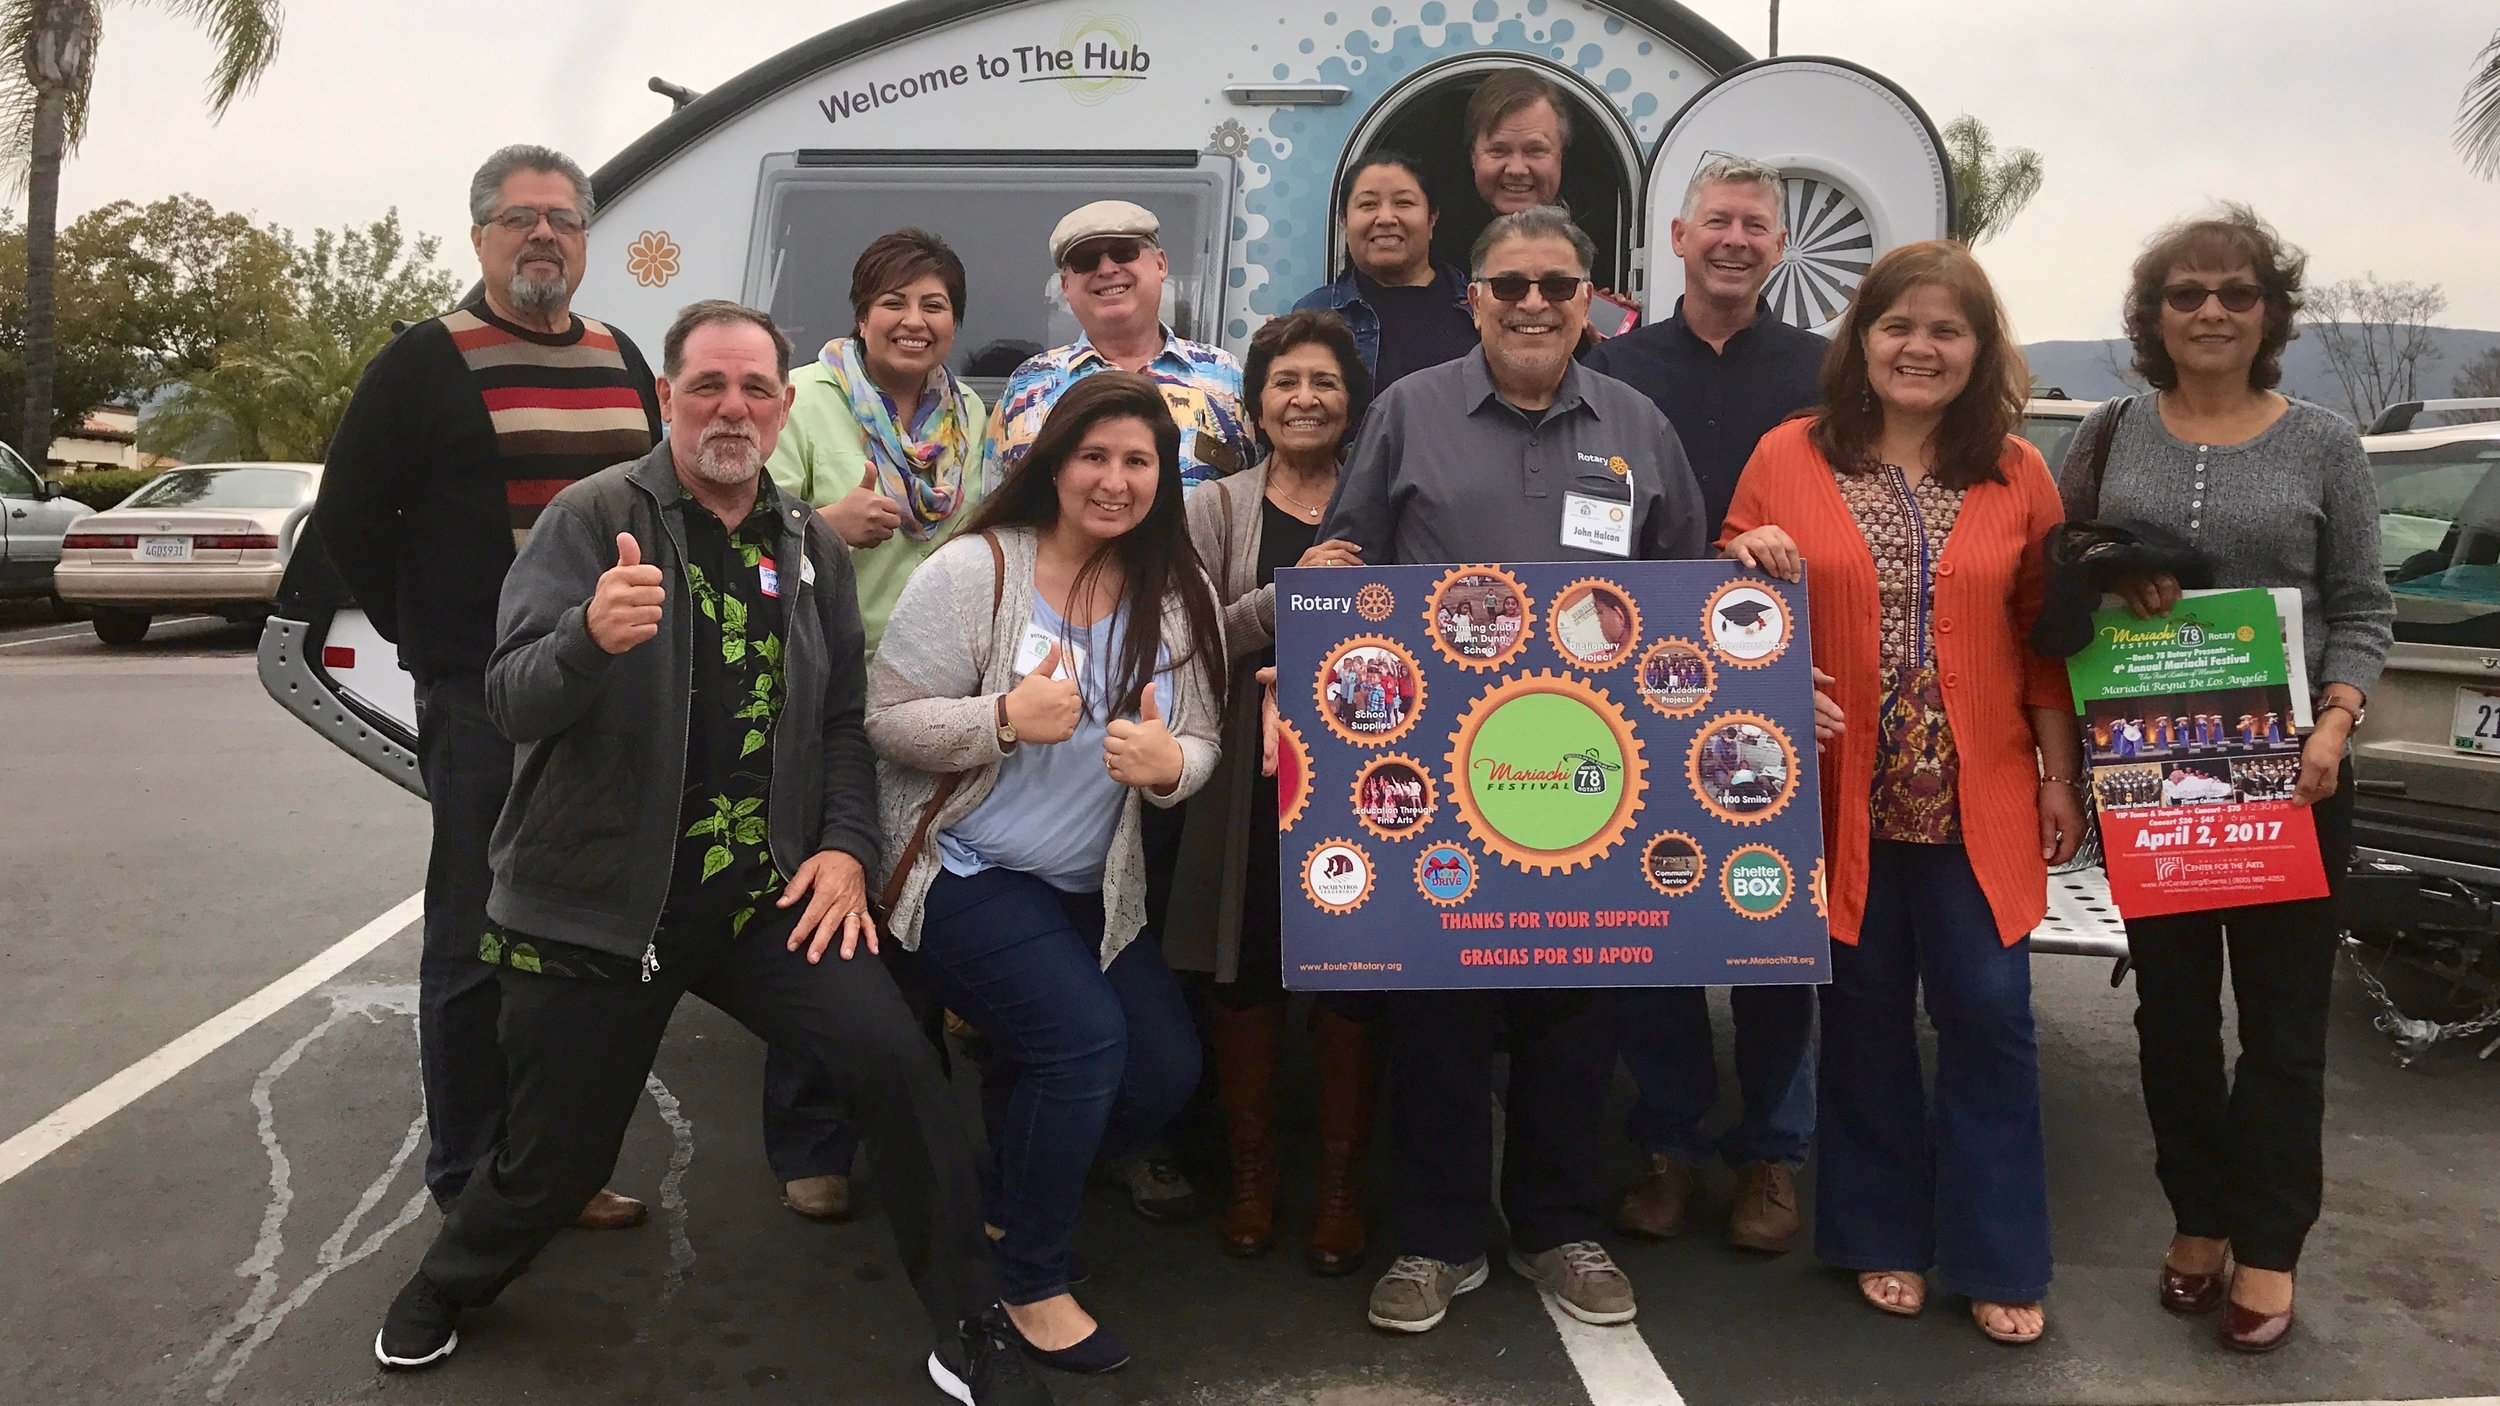 Meeting up with the Highway 78 Rotary Club in North County San Diego for the nickle tour of The Hub and a chance to talk about their upcoming Mariachi Festival that raises funds for local school programs.